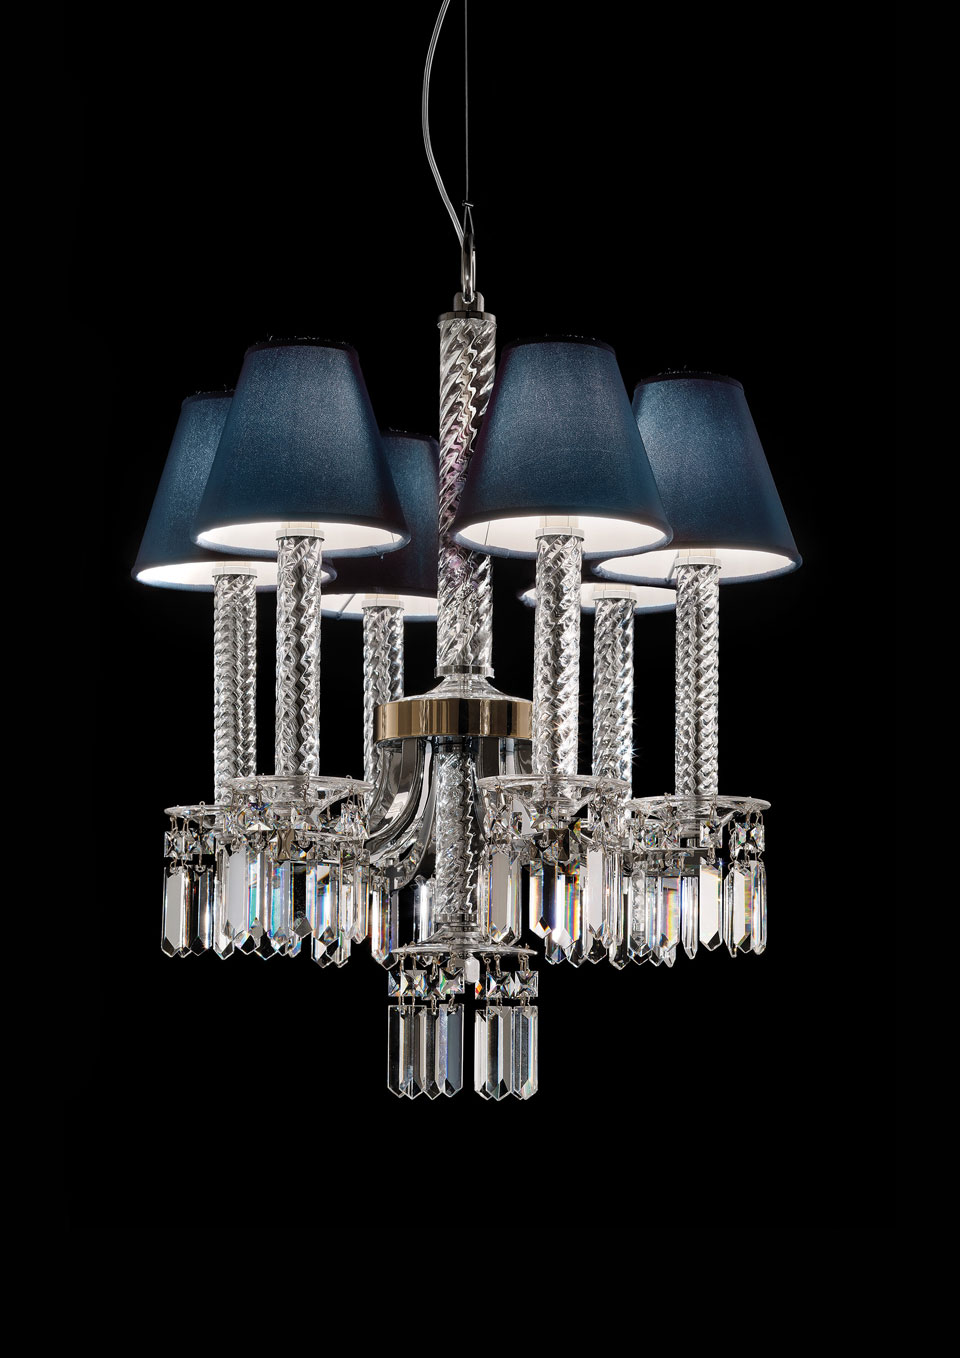 crystal chandelier chrome plated and gold metal navy blue lampshade